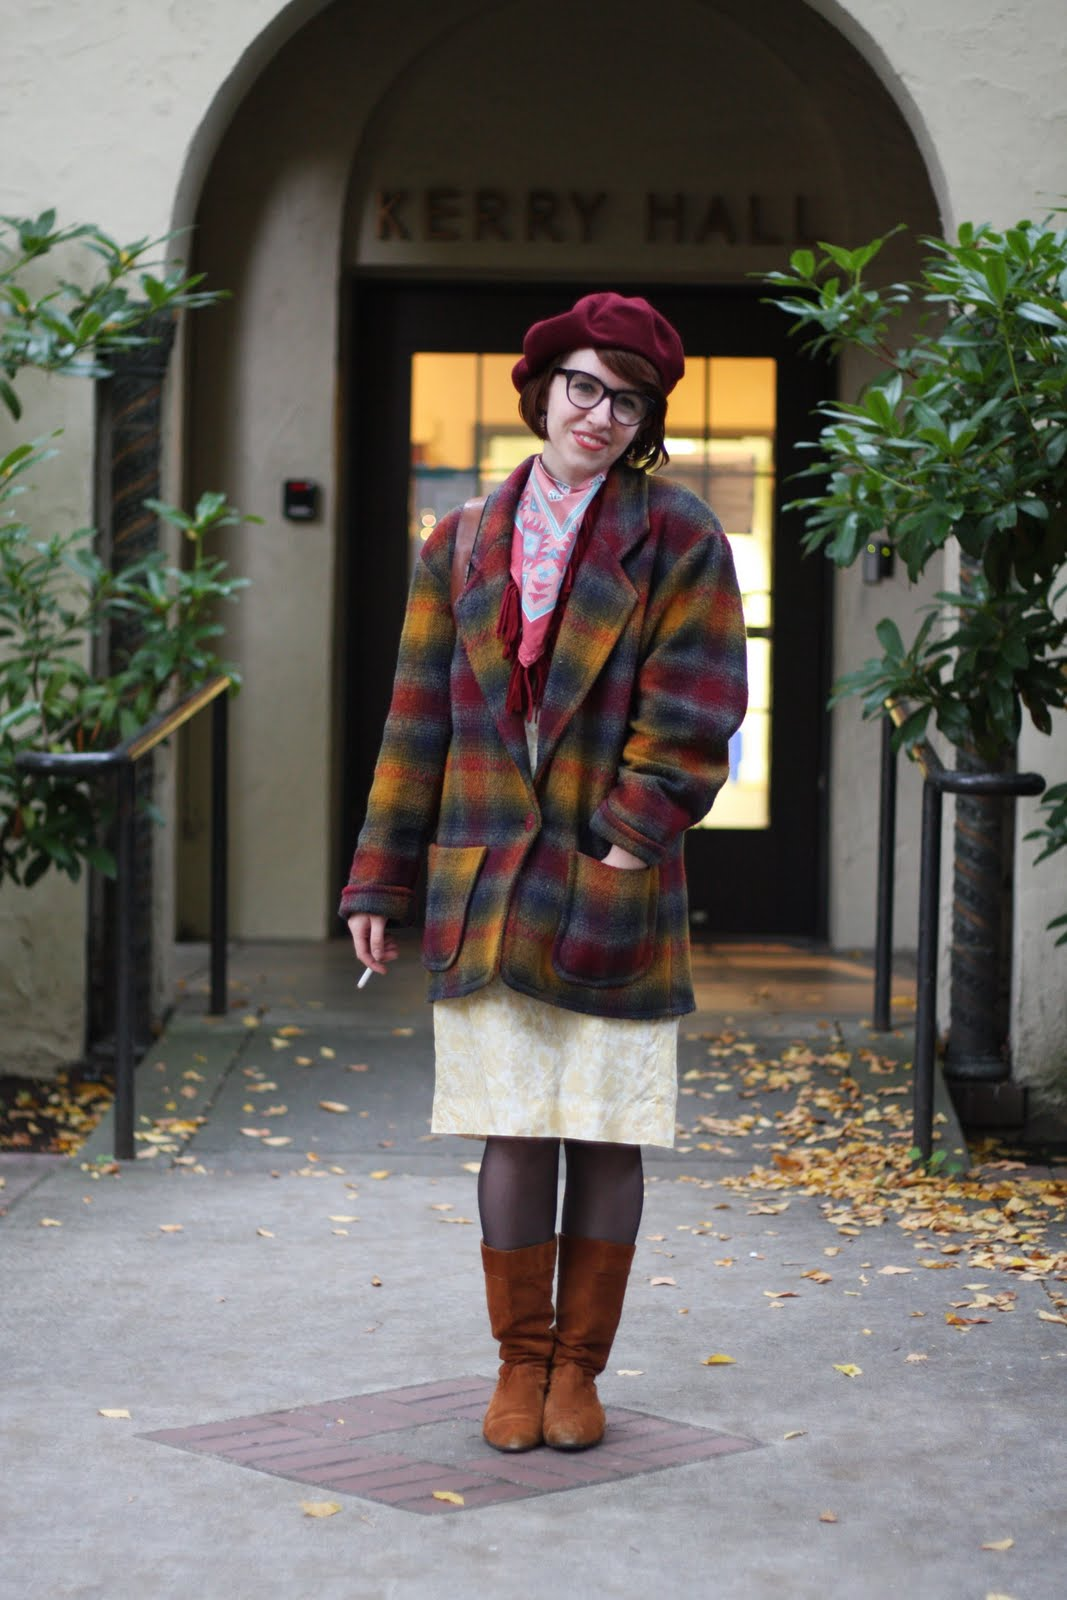 Cornish Art Institute in Seattle, WA student wears a rainbow tweed herringbone coat over a white dress and brown boots